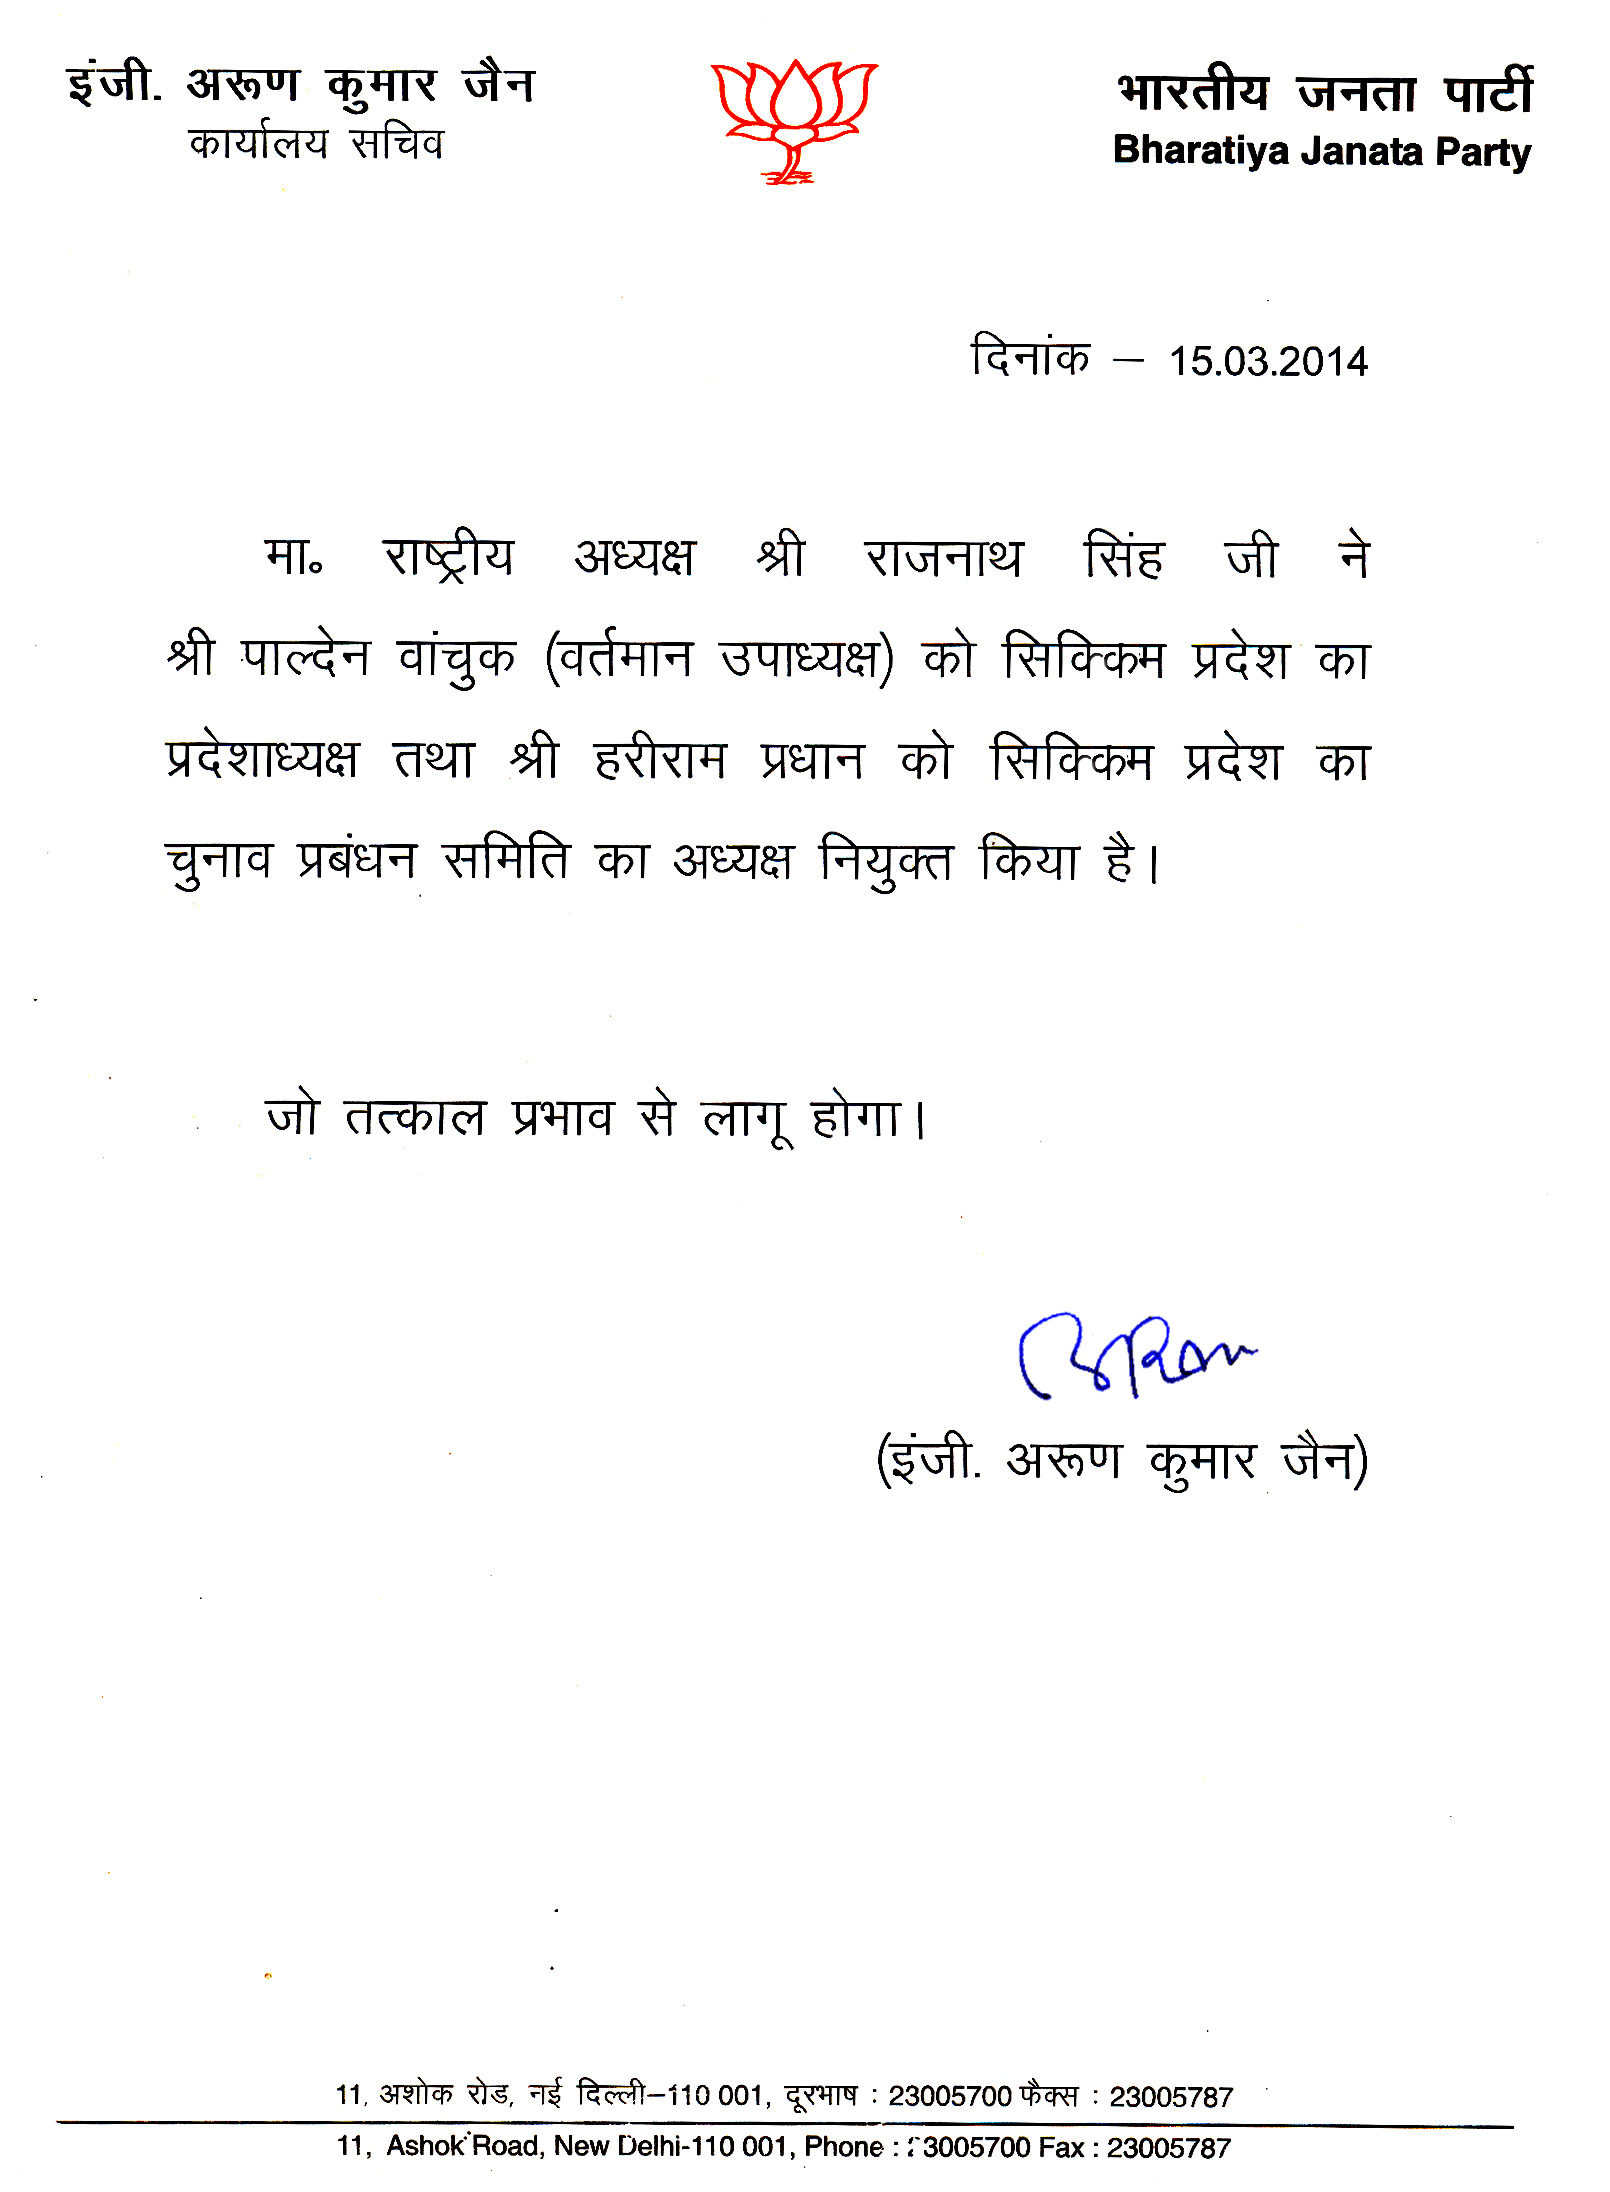 HRI-RAJNATH-SINGH-HAS-APPOINTED-BJP-STATE-PRESIDENT-FOR-SIKKIM